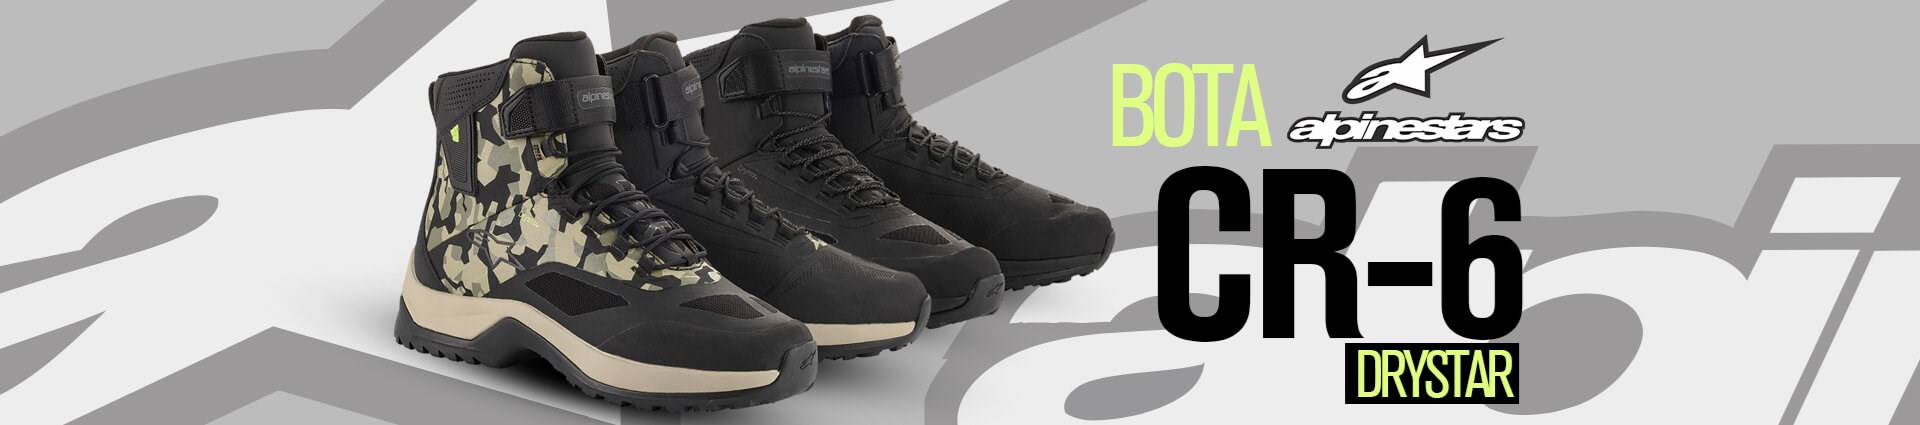 LP Botas - Alpinestars cr6